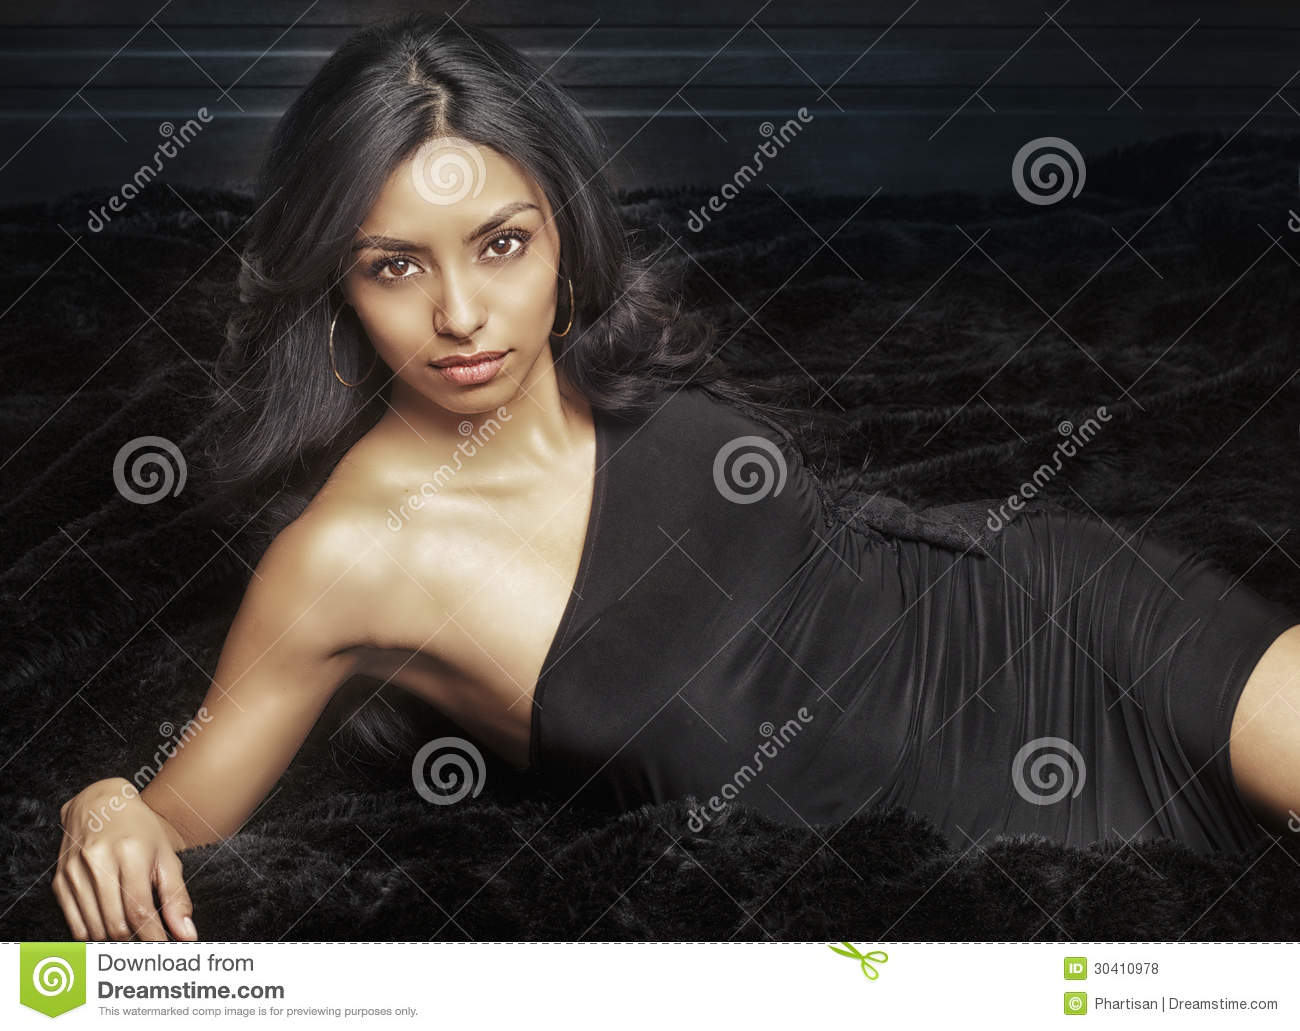 Beautiful Exotic Young Woman Stock Photo - Image of hispanic, elegant: 30410978